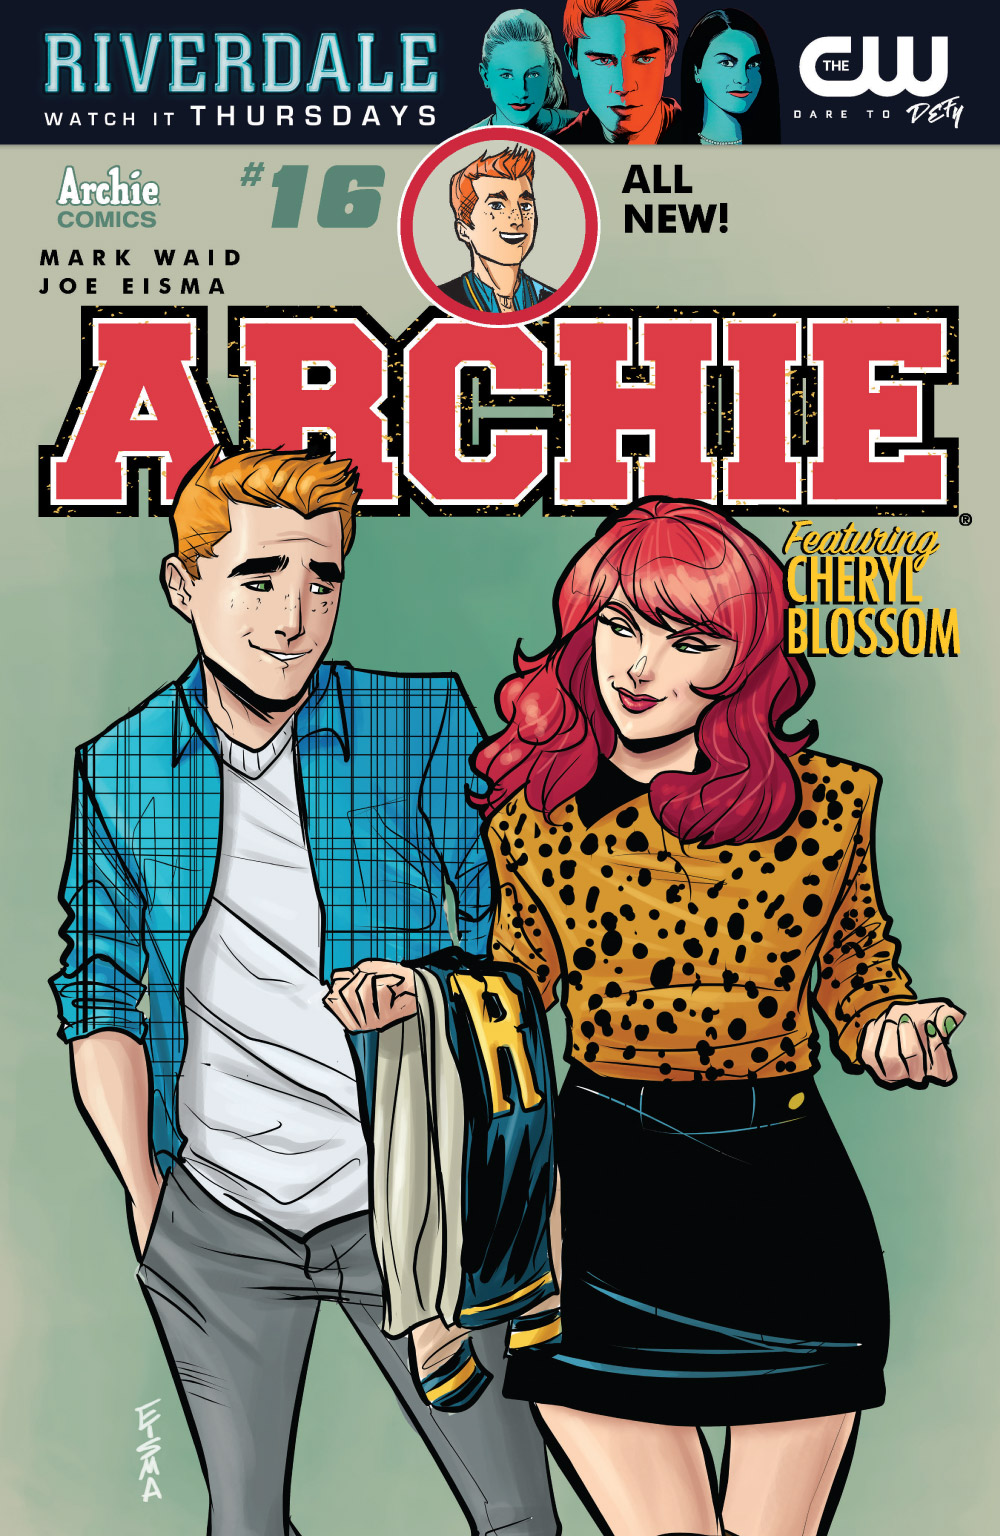 Check out a preview of ARCHIE #16 and more new Archie Comics on sale